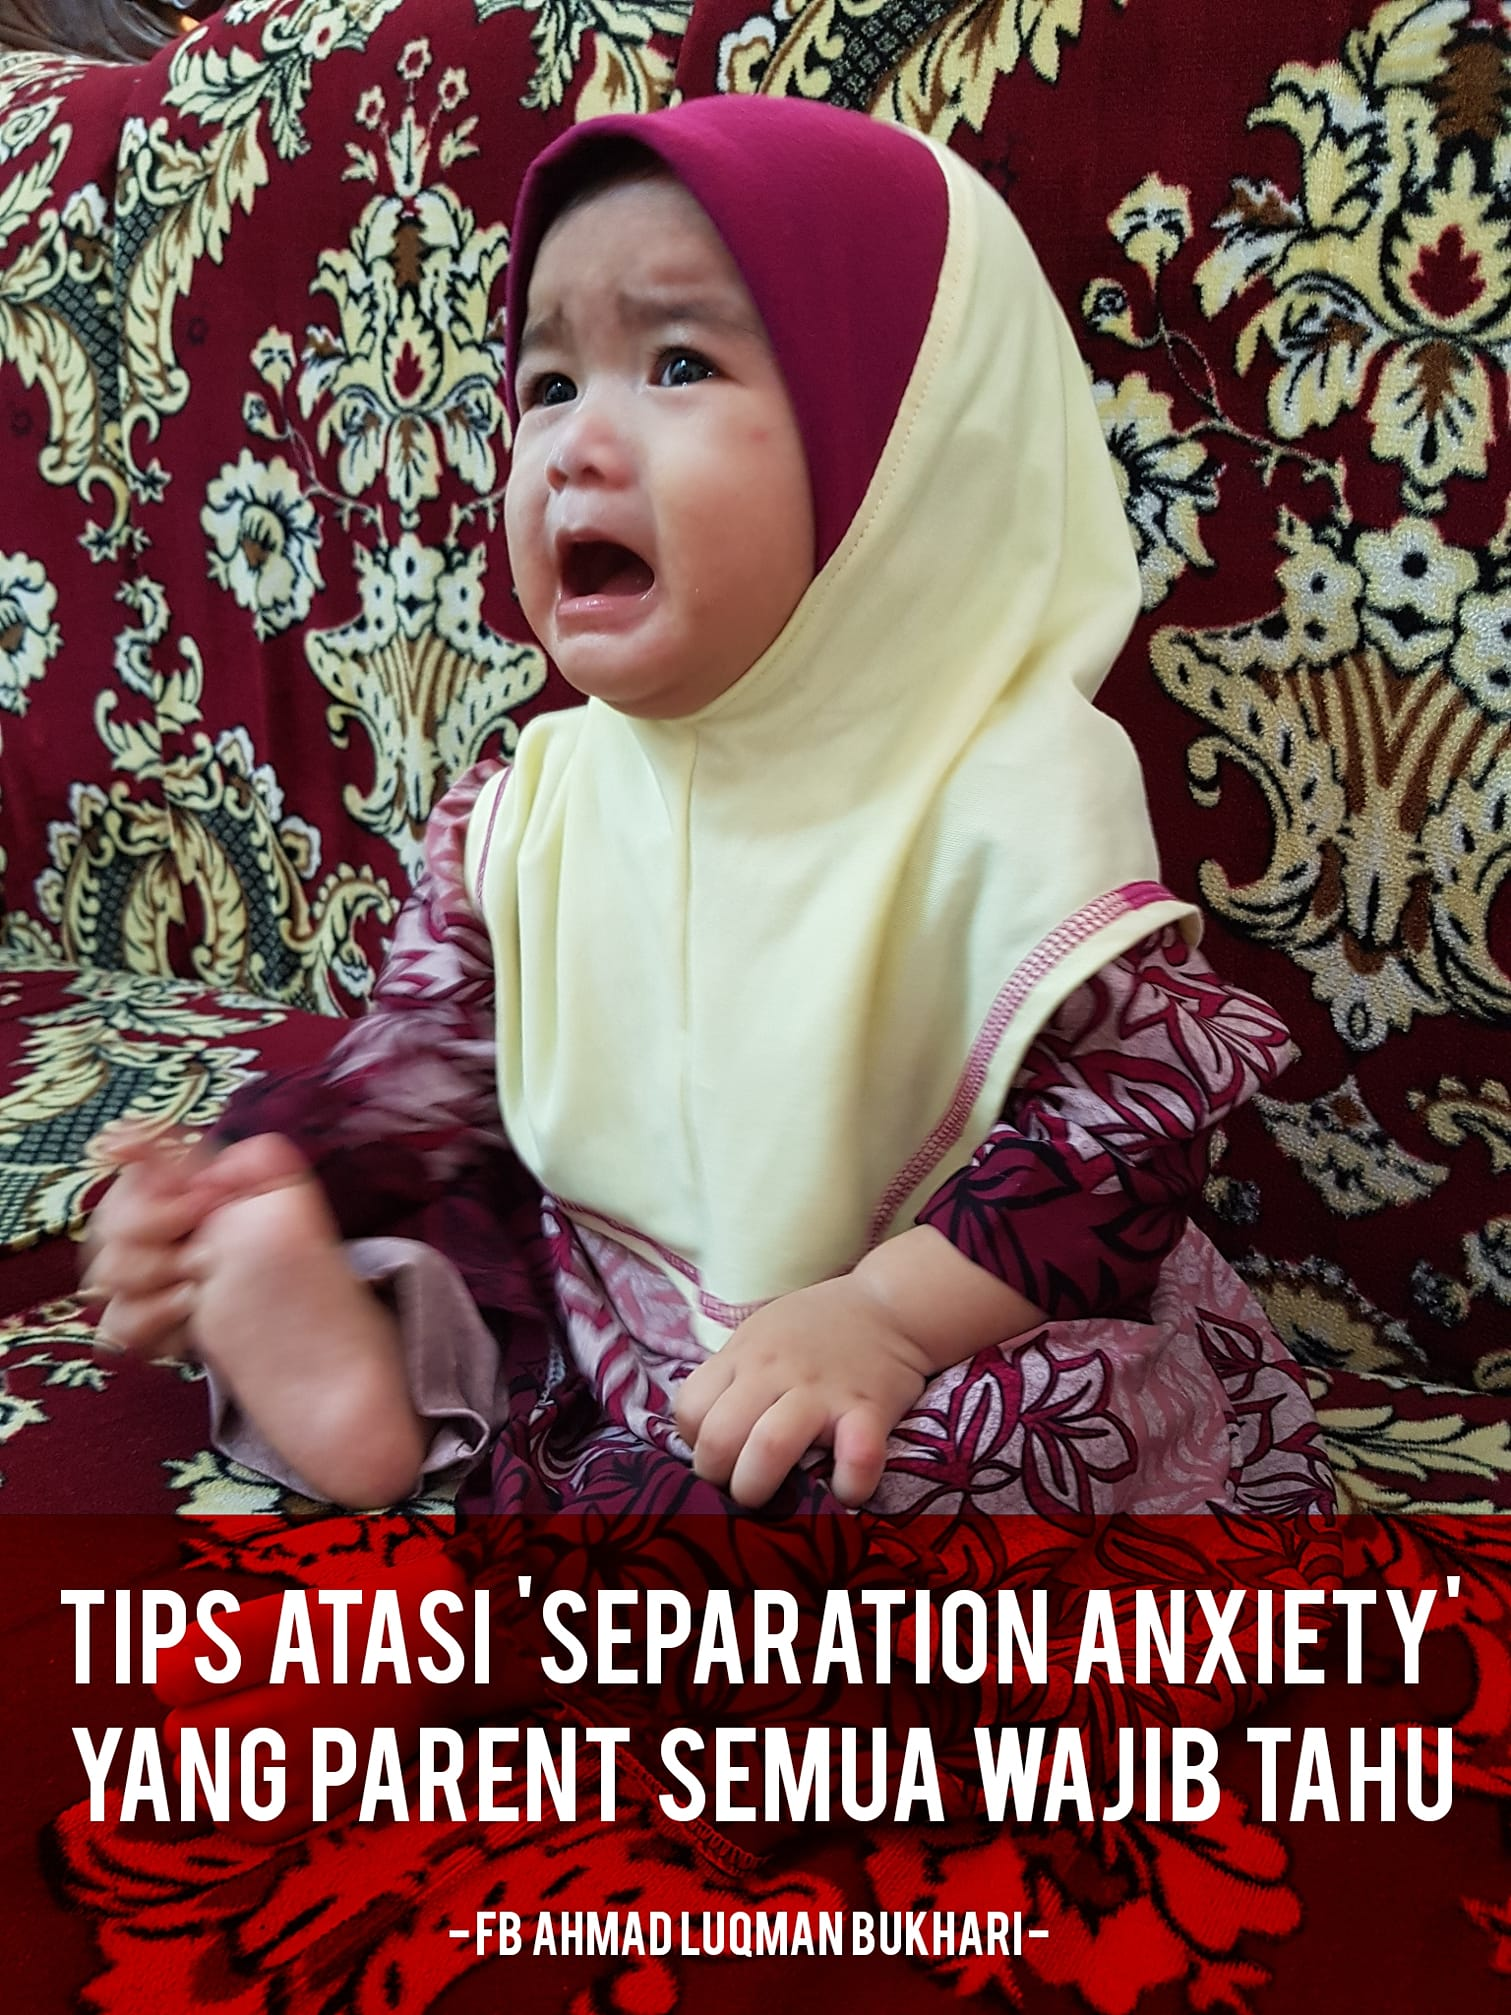 TIPS ATASI SEPARATION ANXIETY PADA ANAK!